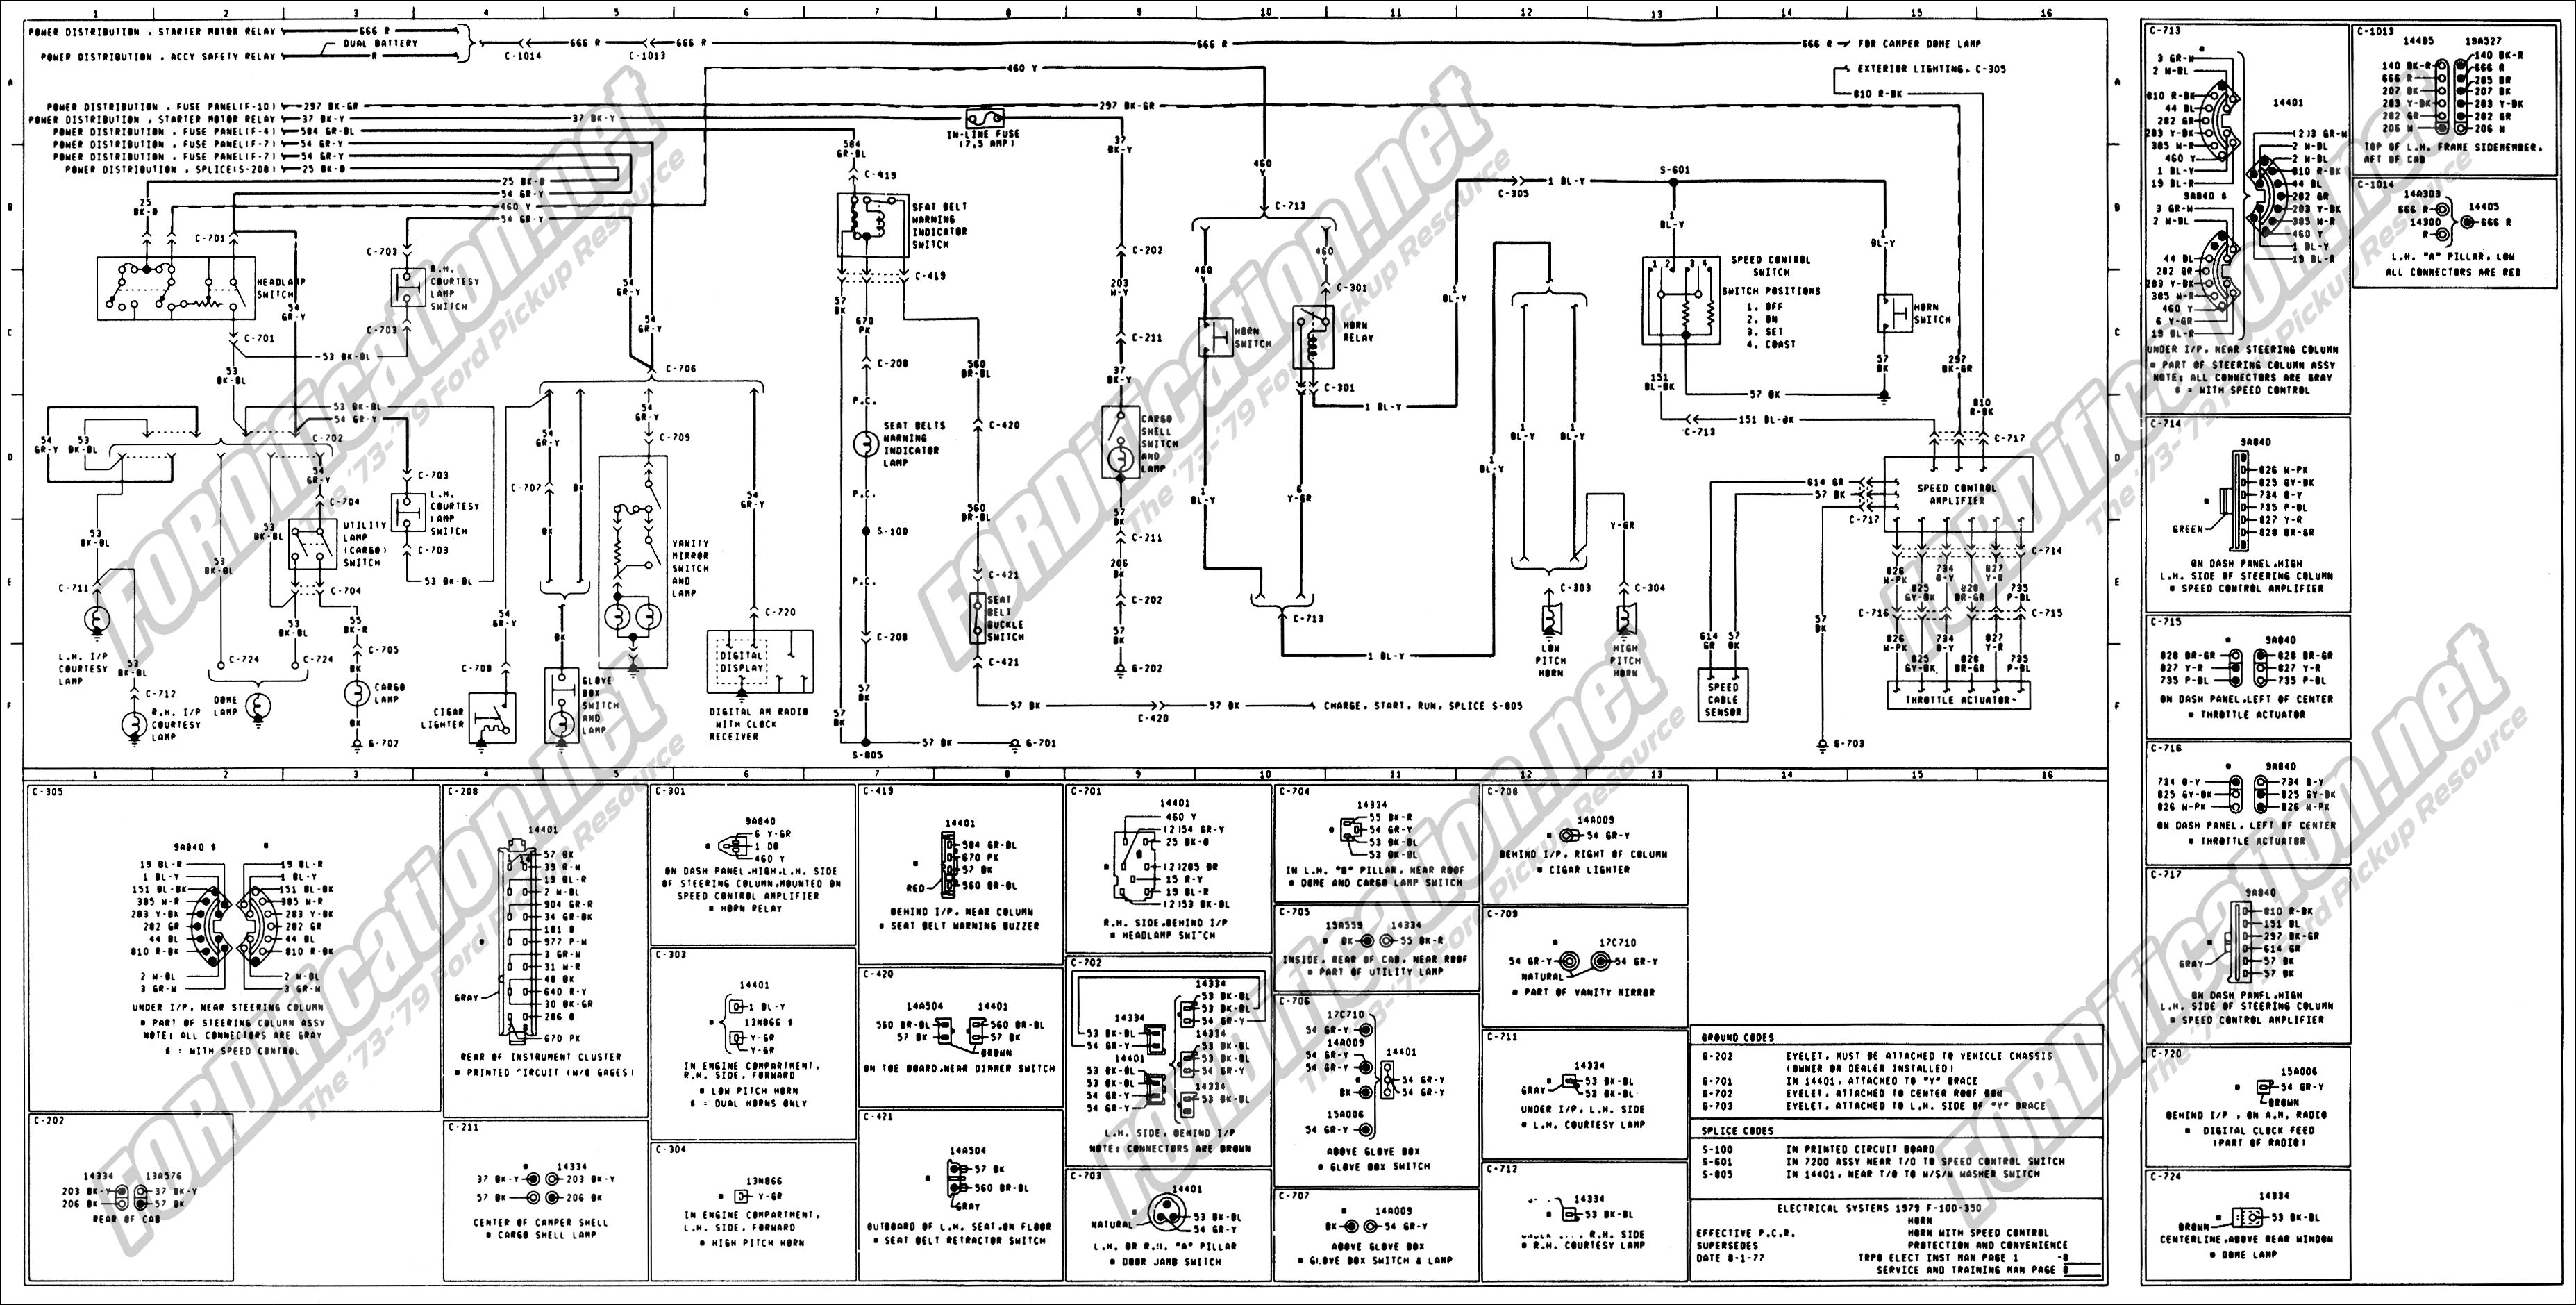 wiring_79master_8of9 1973 1979 ford truck wiring diagrams & schematics fordification net 1979 ford bronco fuse box diagram at nearapp.co